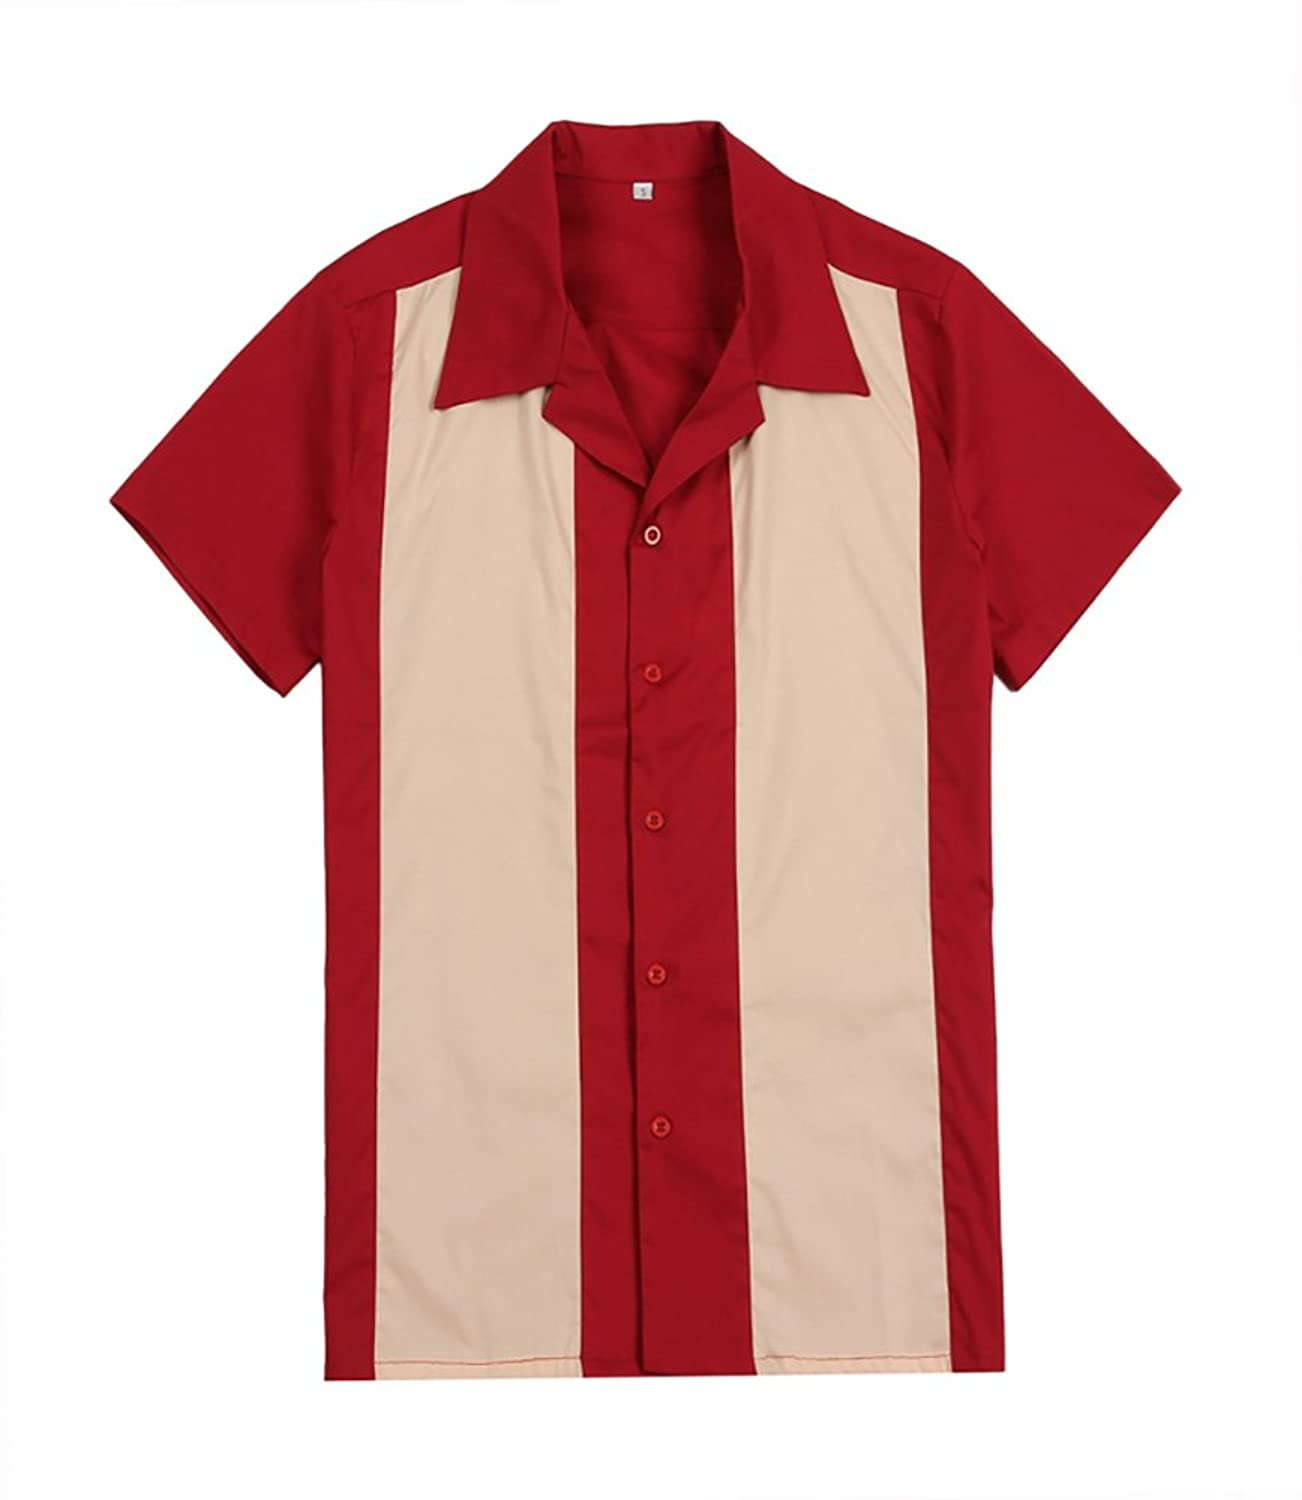 1950s Men's Clothing Mens Rockabilly Vintage 50s Clothing Short Sleeve Bowling Shirts Red Cream $24.71 AT vintagedancer.com